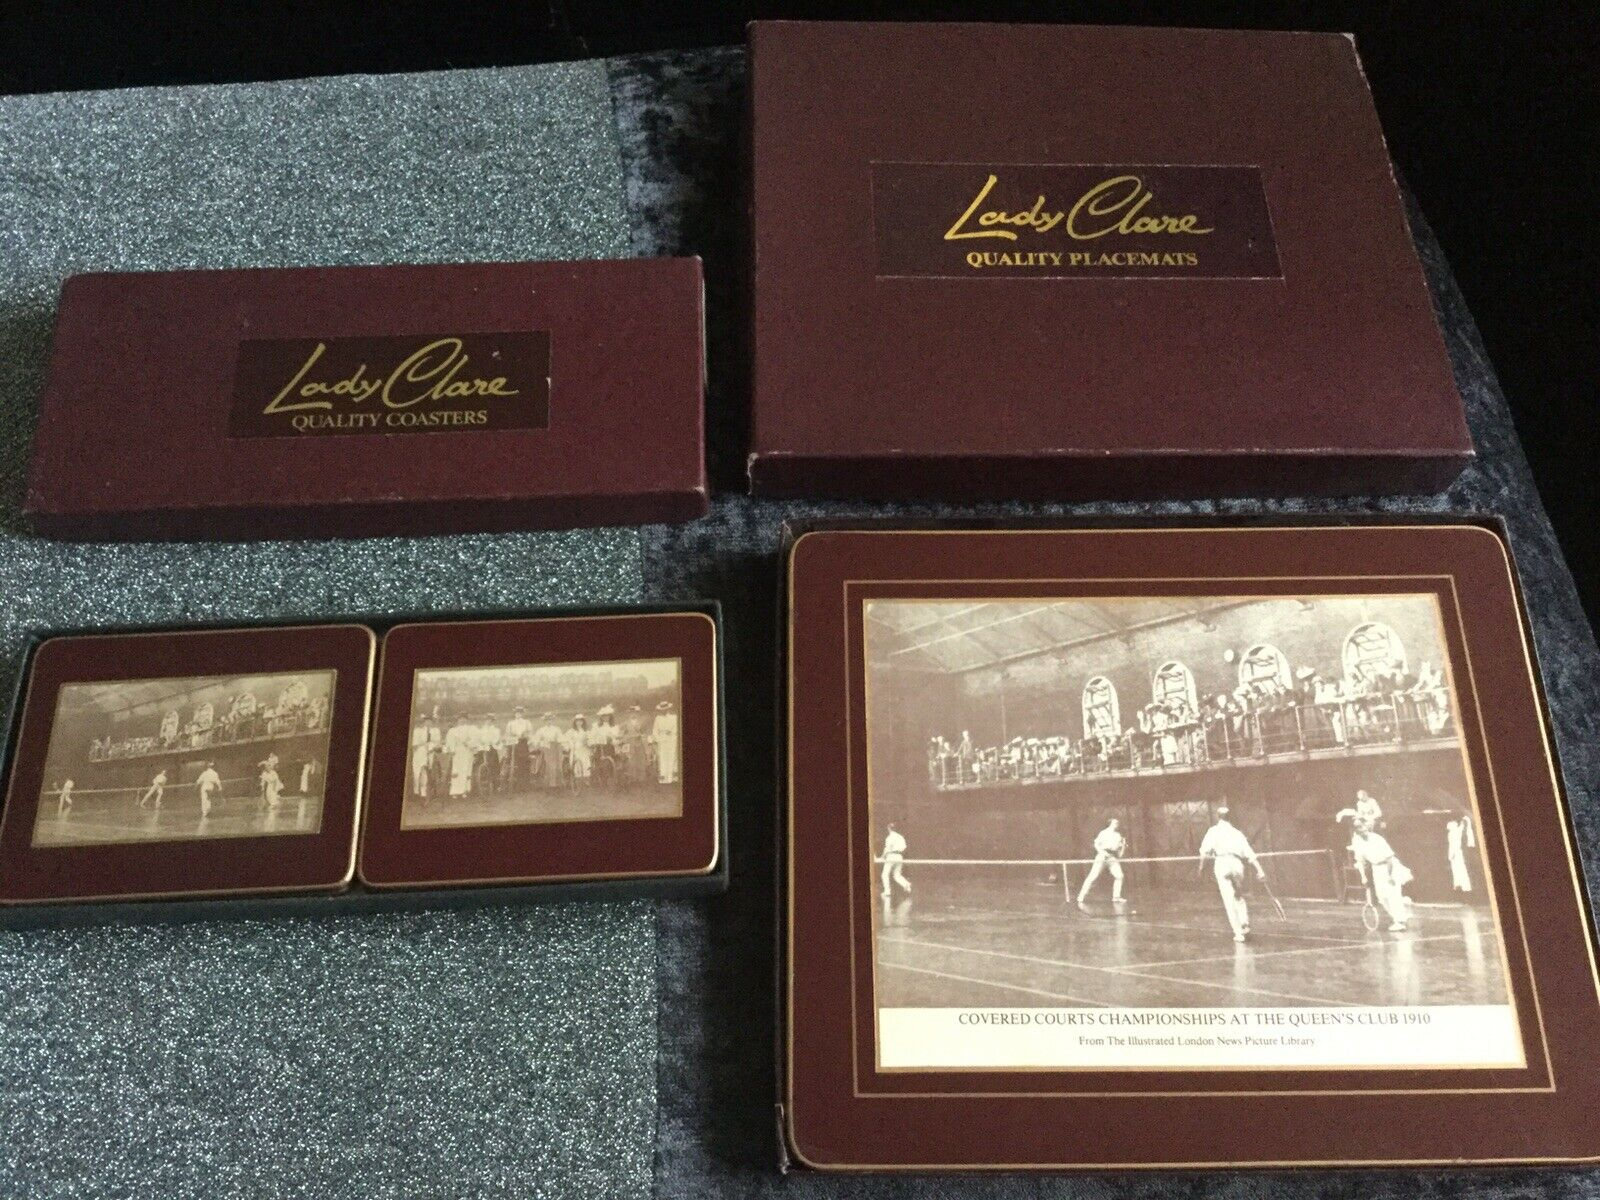 Rare Vintage Lady Clare Place Mats & Coasters Queens Club Tennis Real Photos 1st